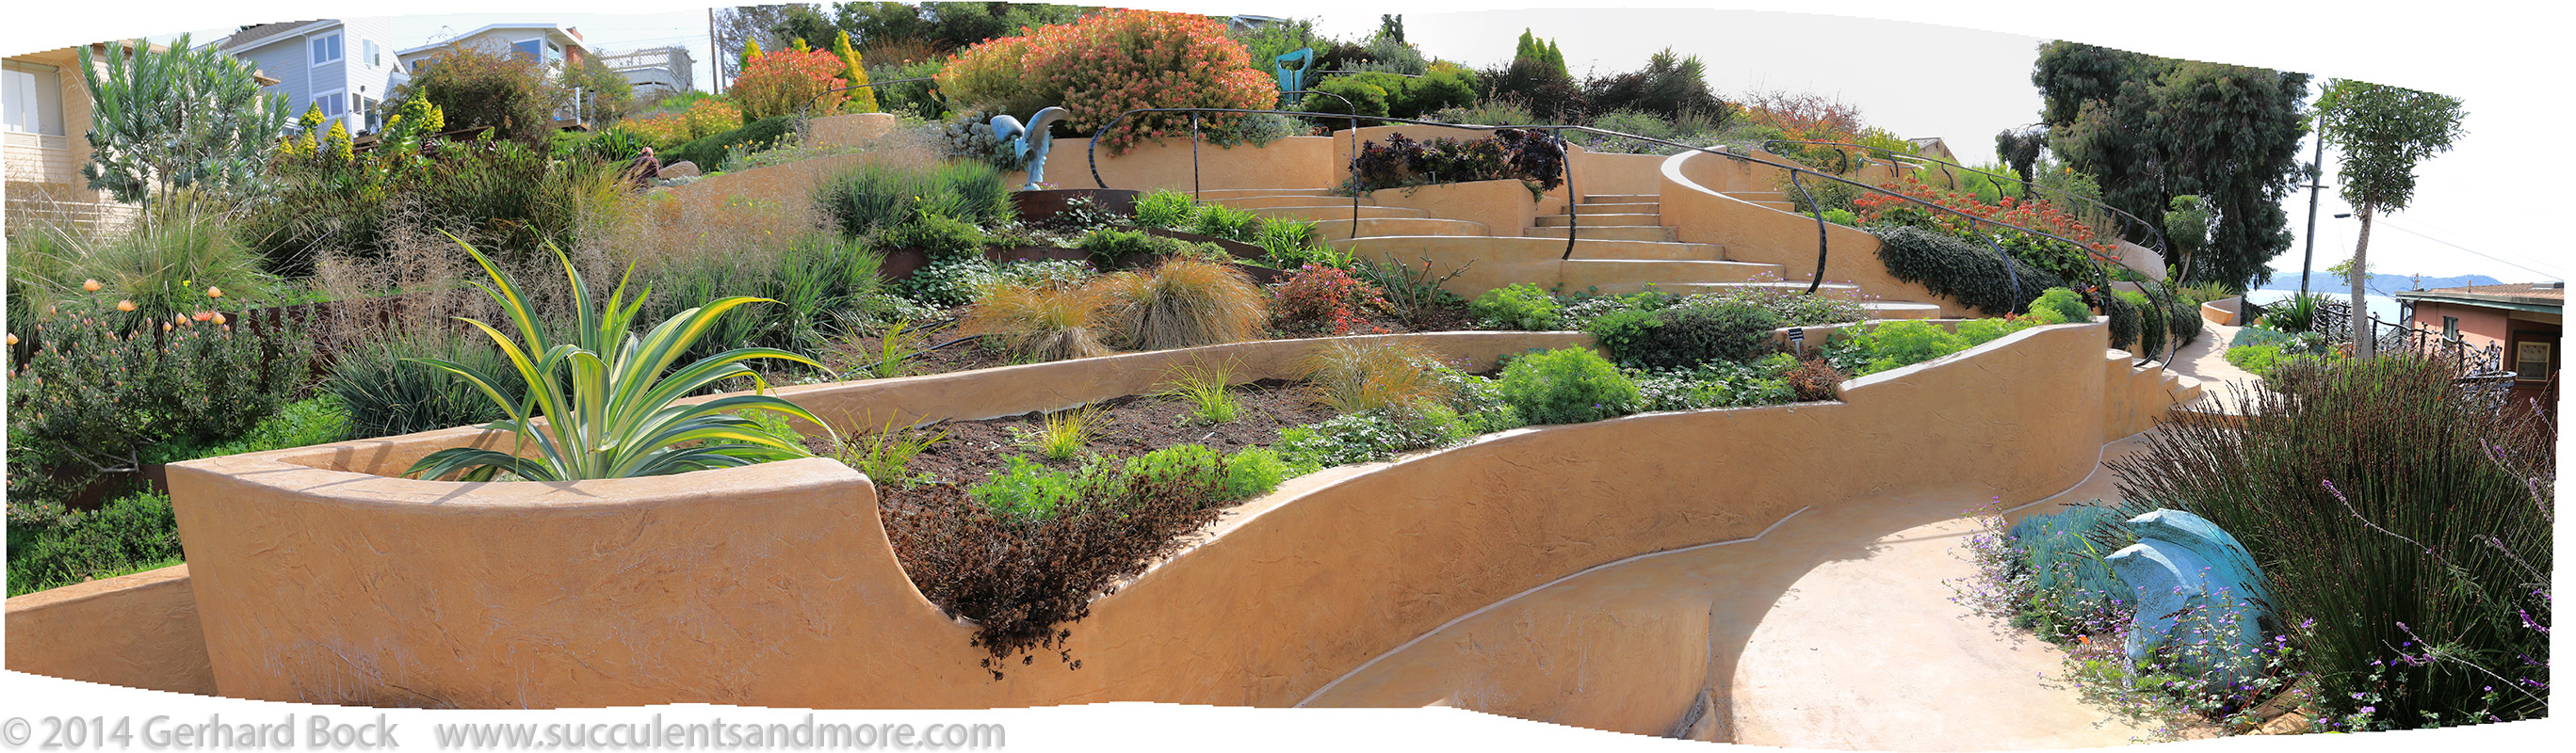 Succulents and More: Wave Garden, Point Richmond, CA